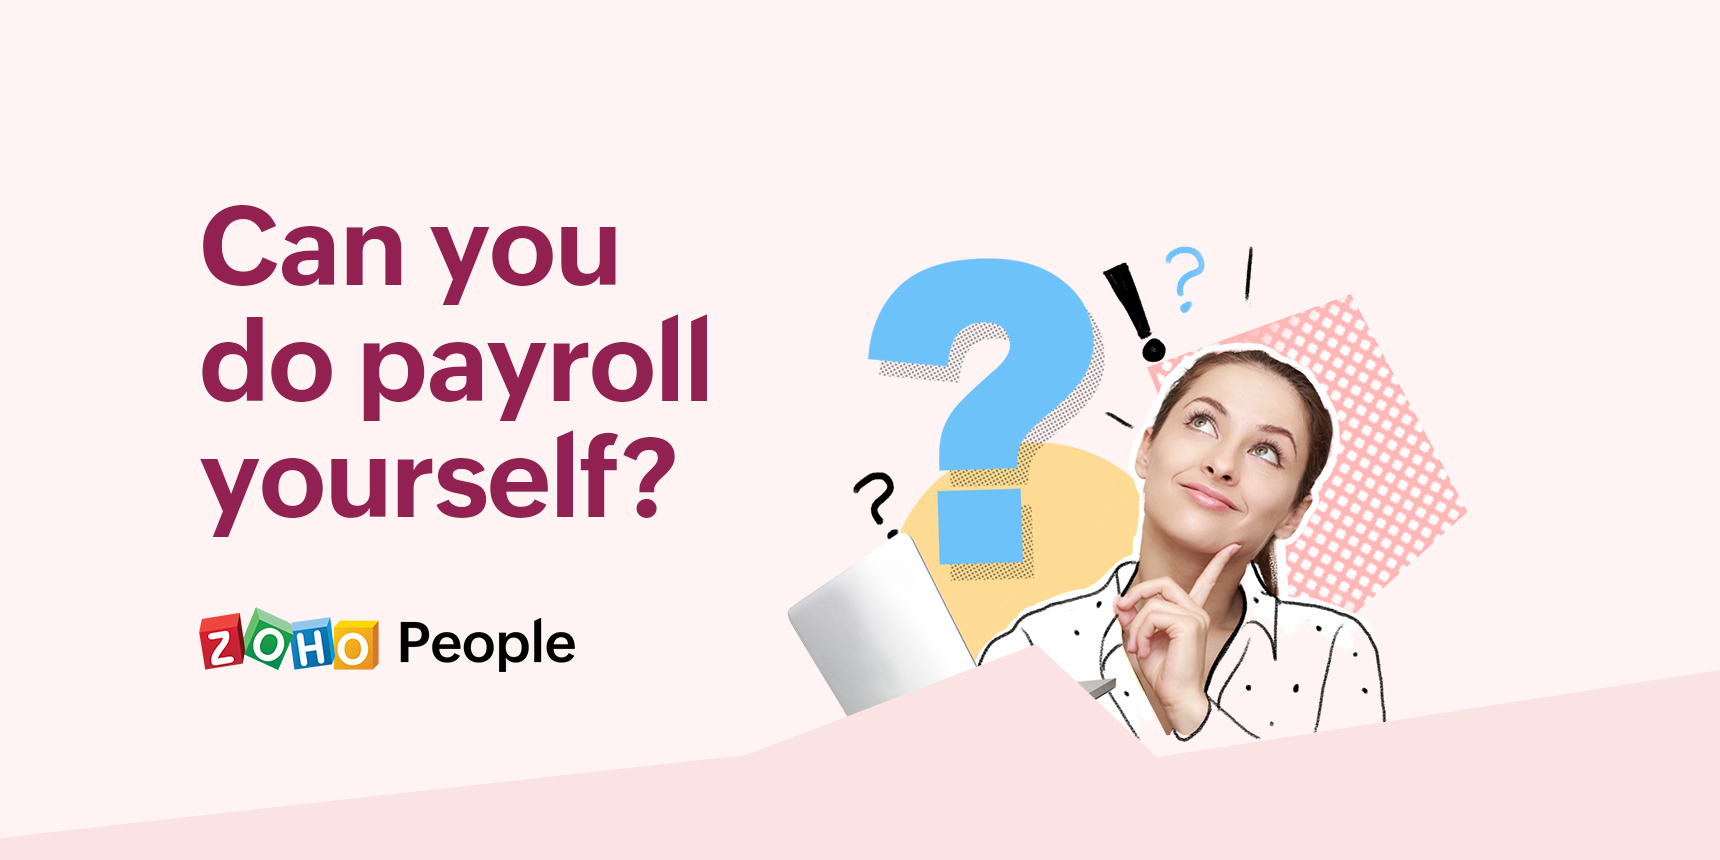 Can you do payroll yourself?